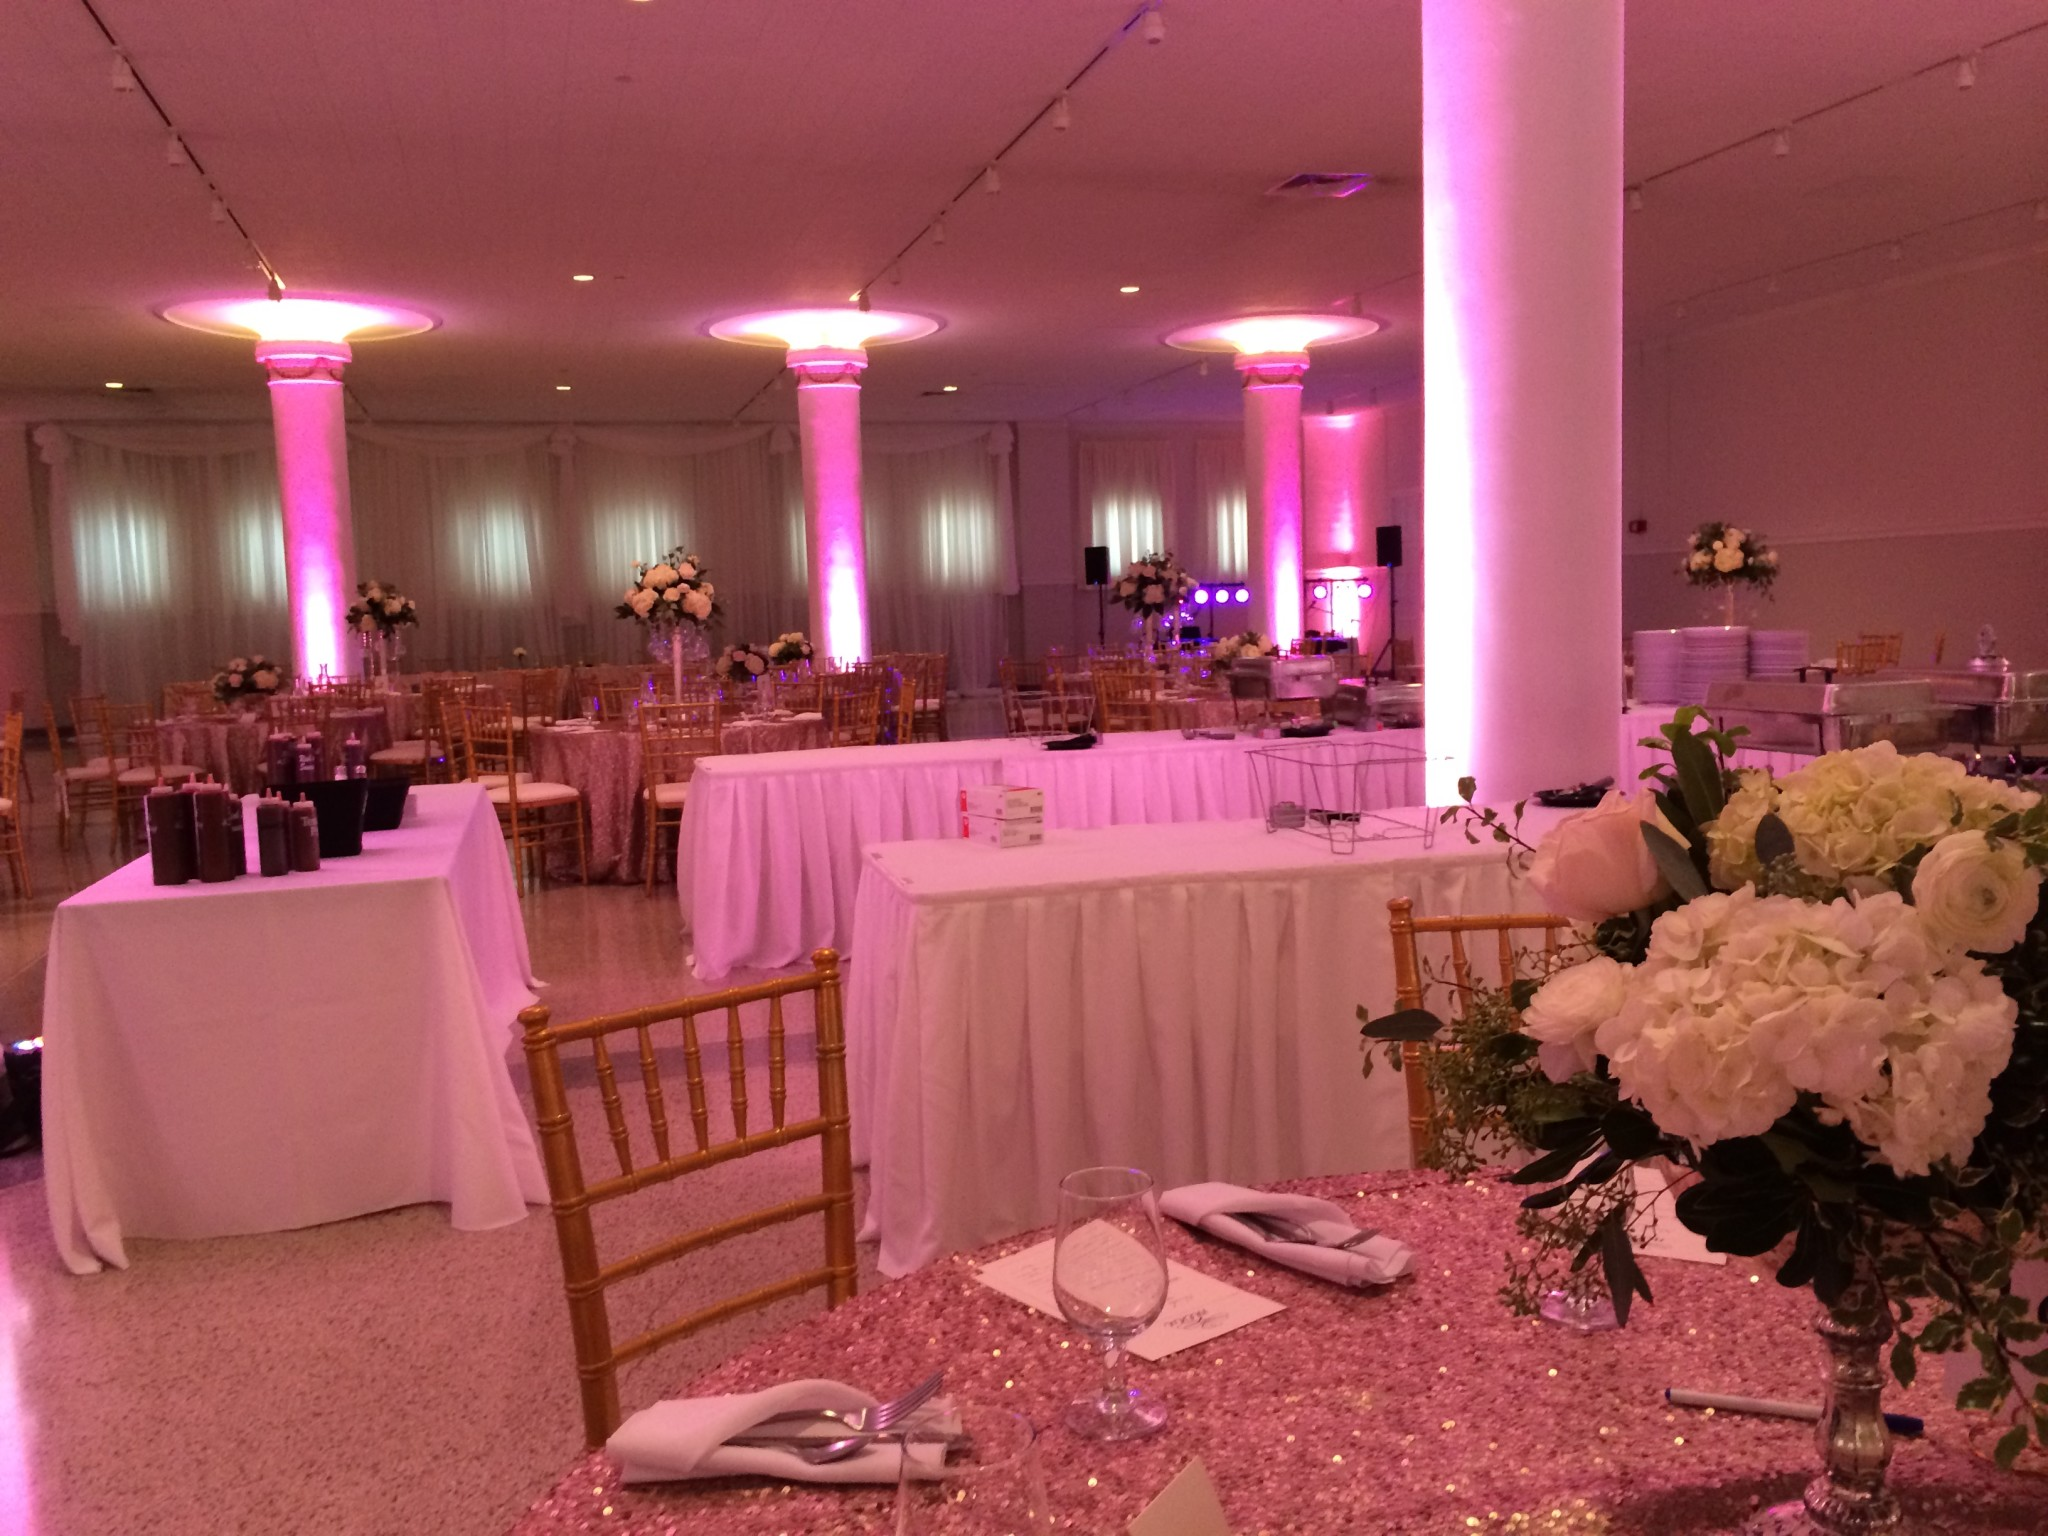 Bloomington Center Of Performing Arts Wedding